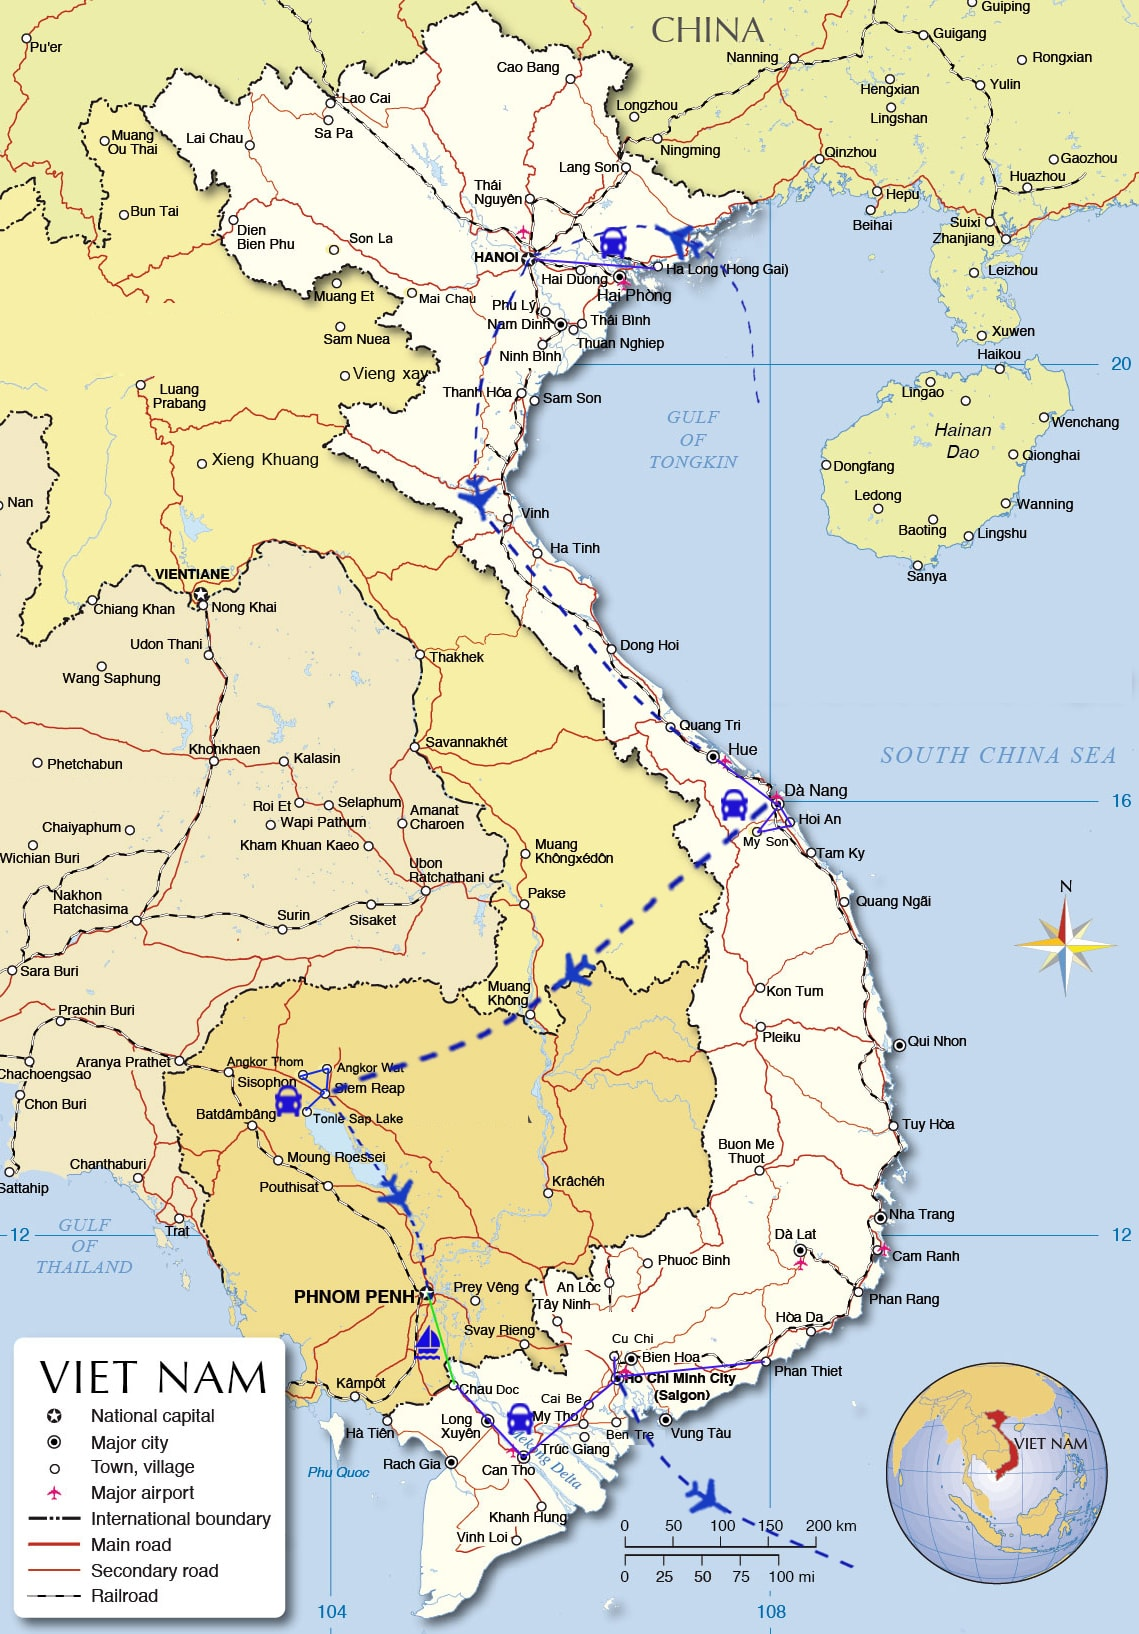 IFT03: Best of Vietnam & Cambodia Family Tour - 21 days from Hanoi map